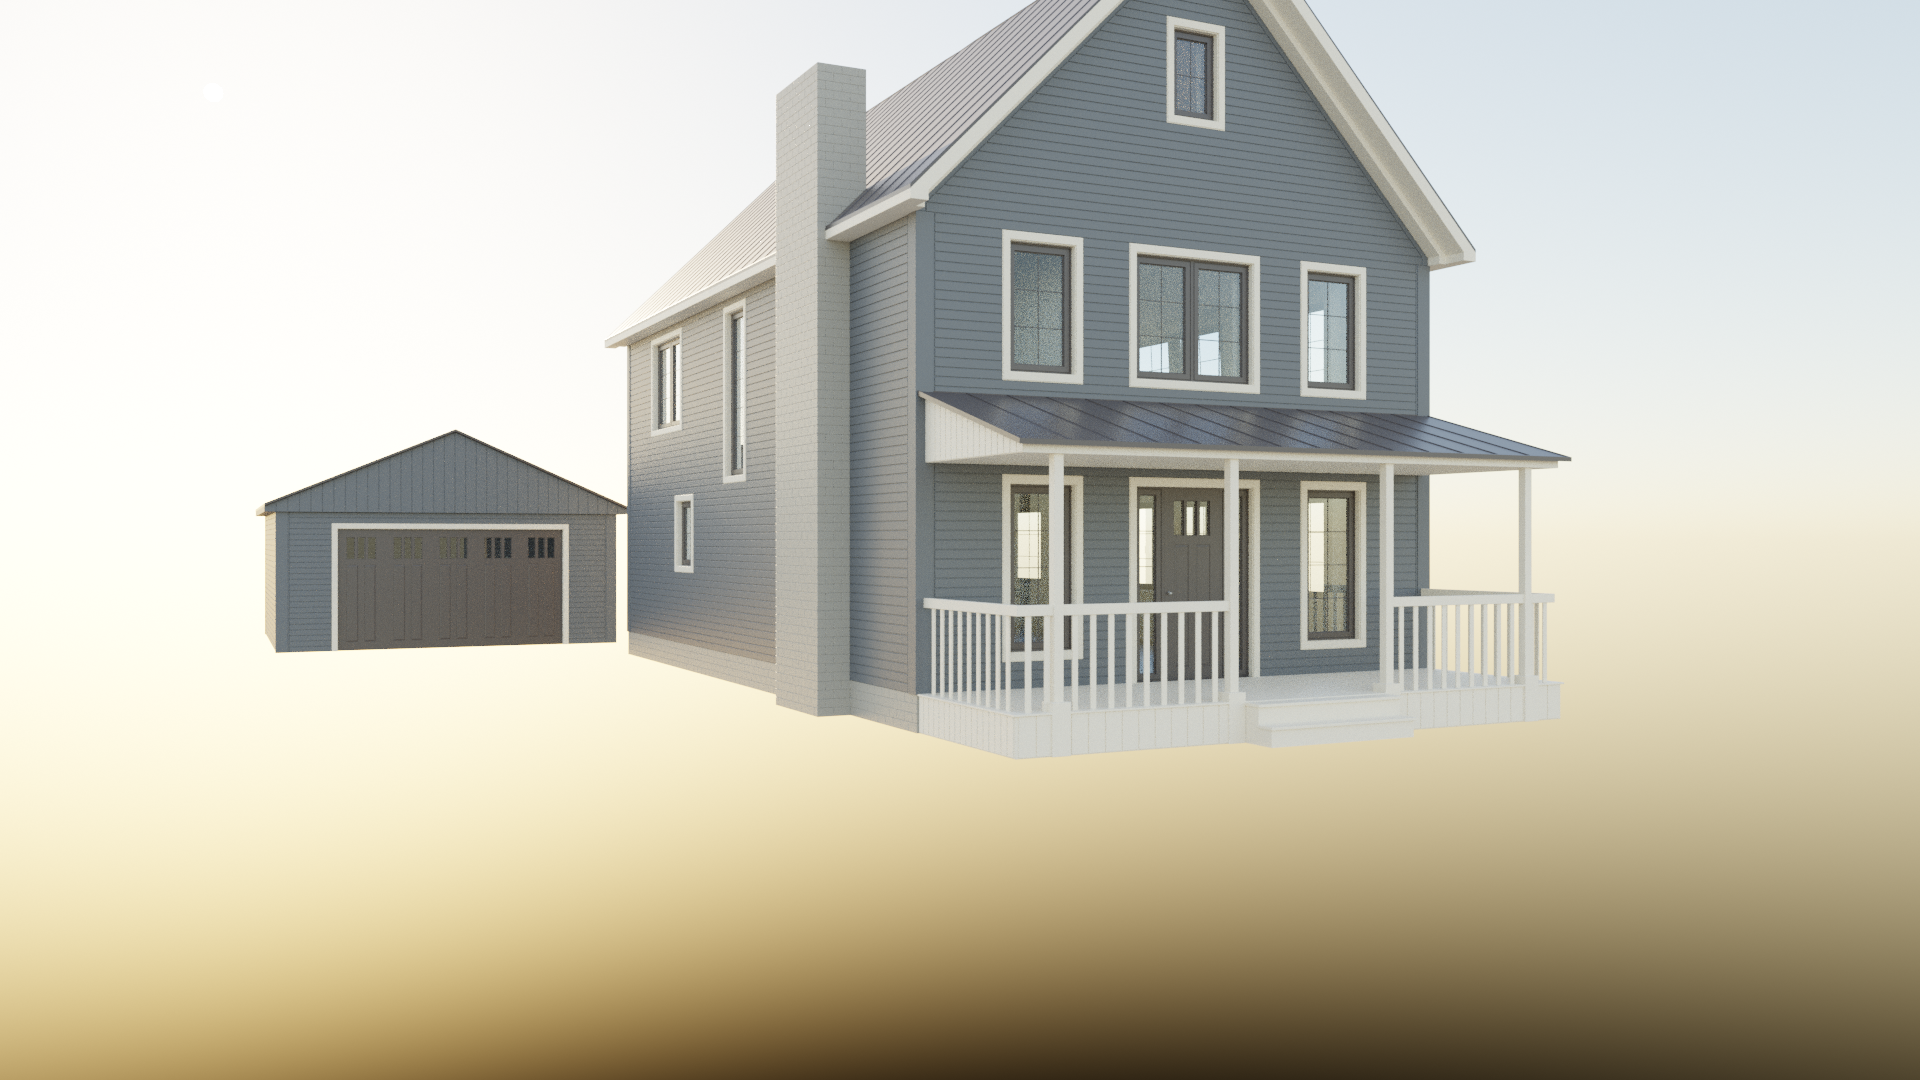 Timber Frame Barn House preview image 1